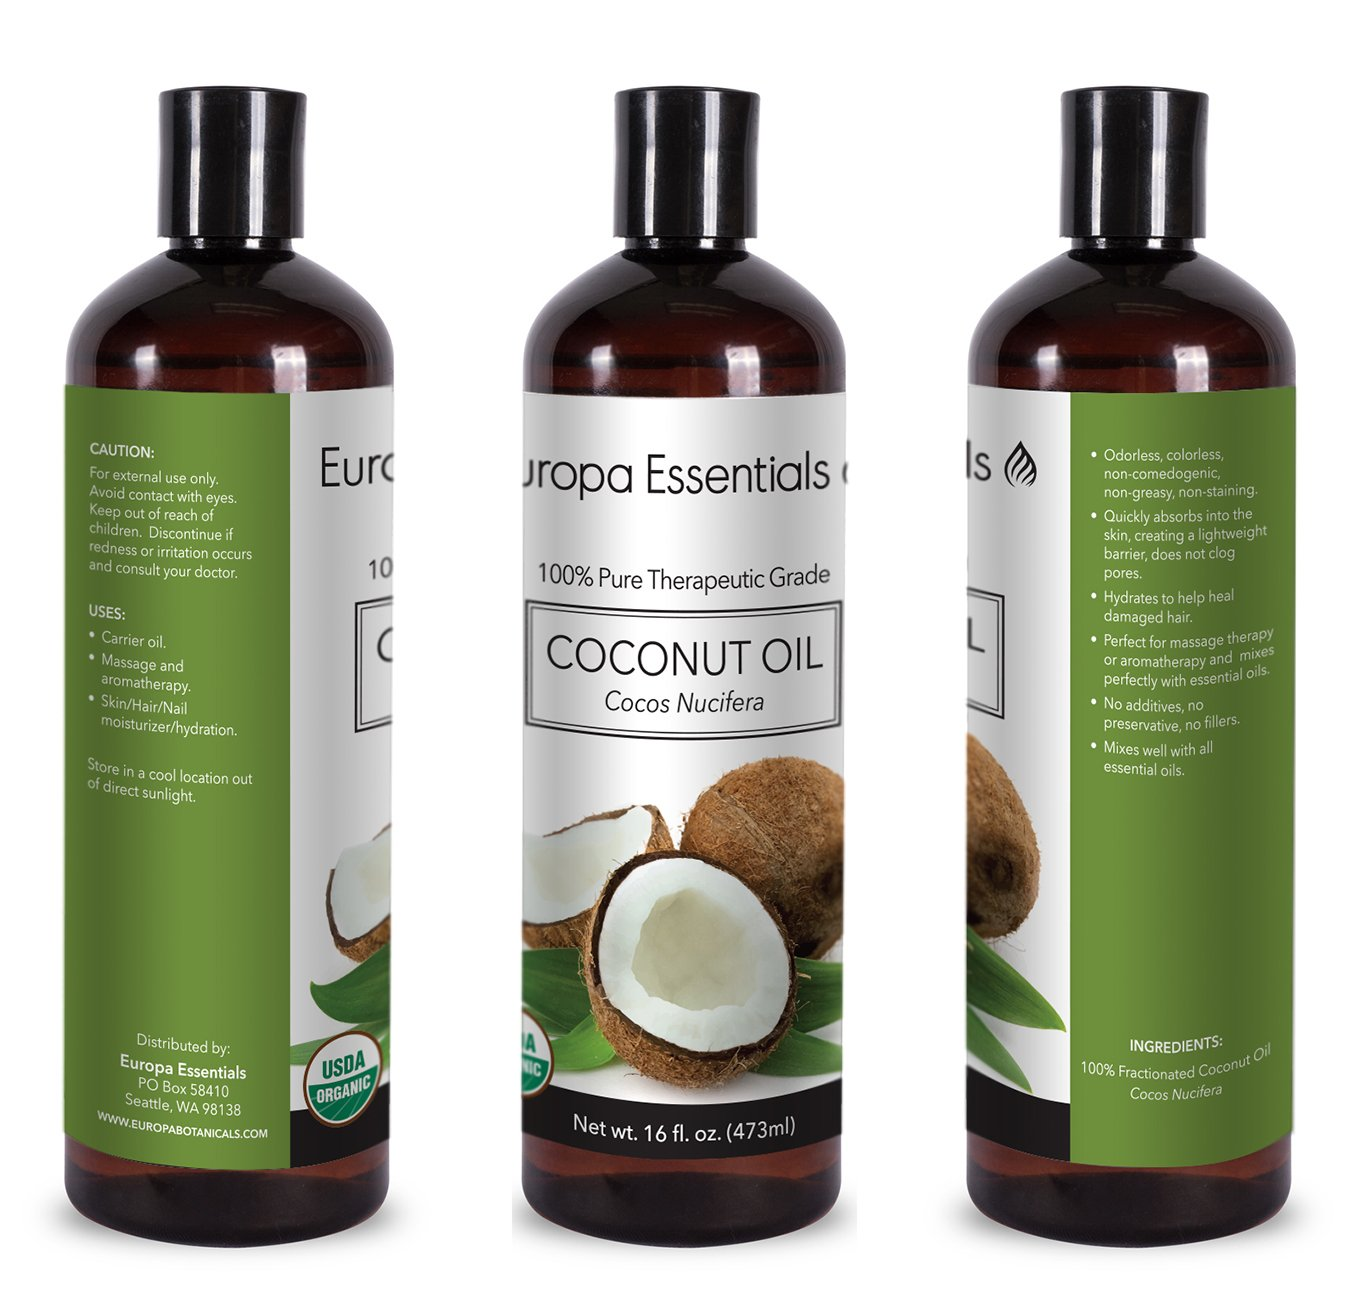 Amazon.com : Europa Essentials 100% PURE ORGANIC Undiluted Fractionated Coconut Oil, Therapeutic Grade Multi-Use Carrier Oil for Essential Oils, ...